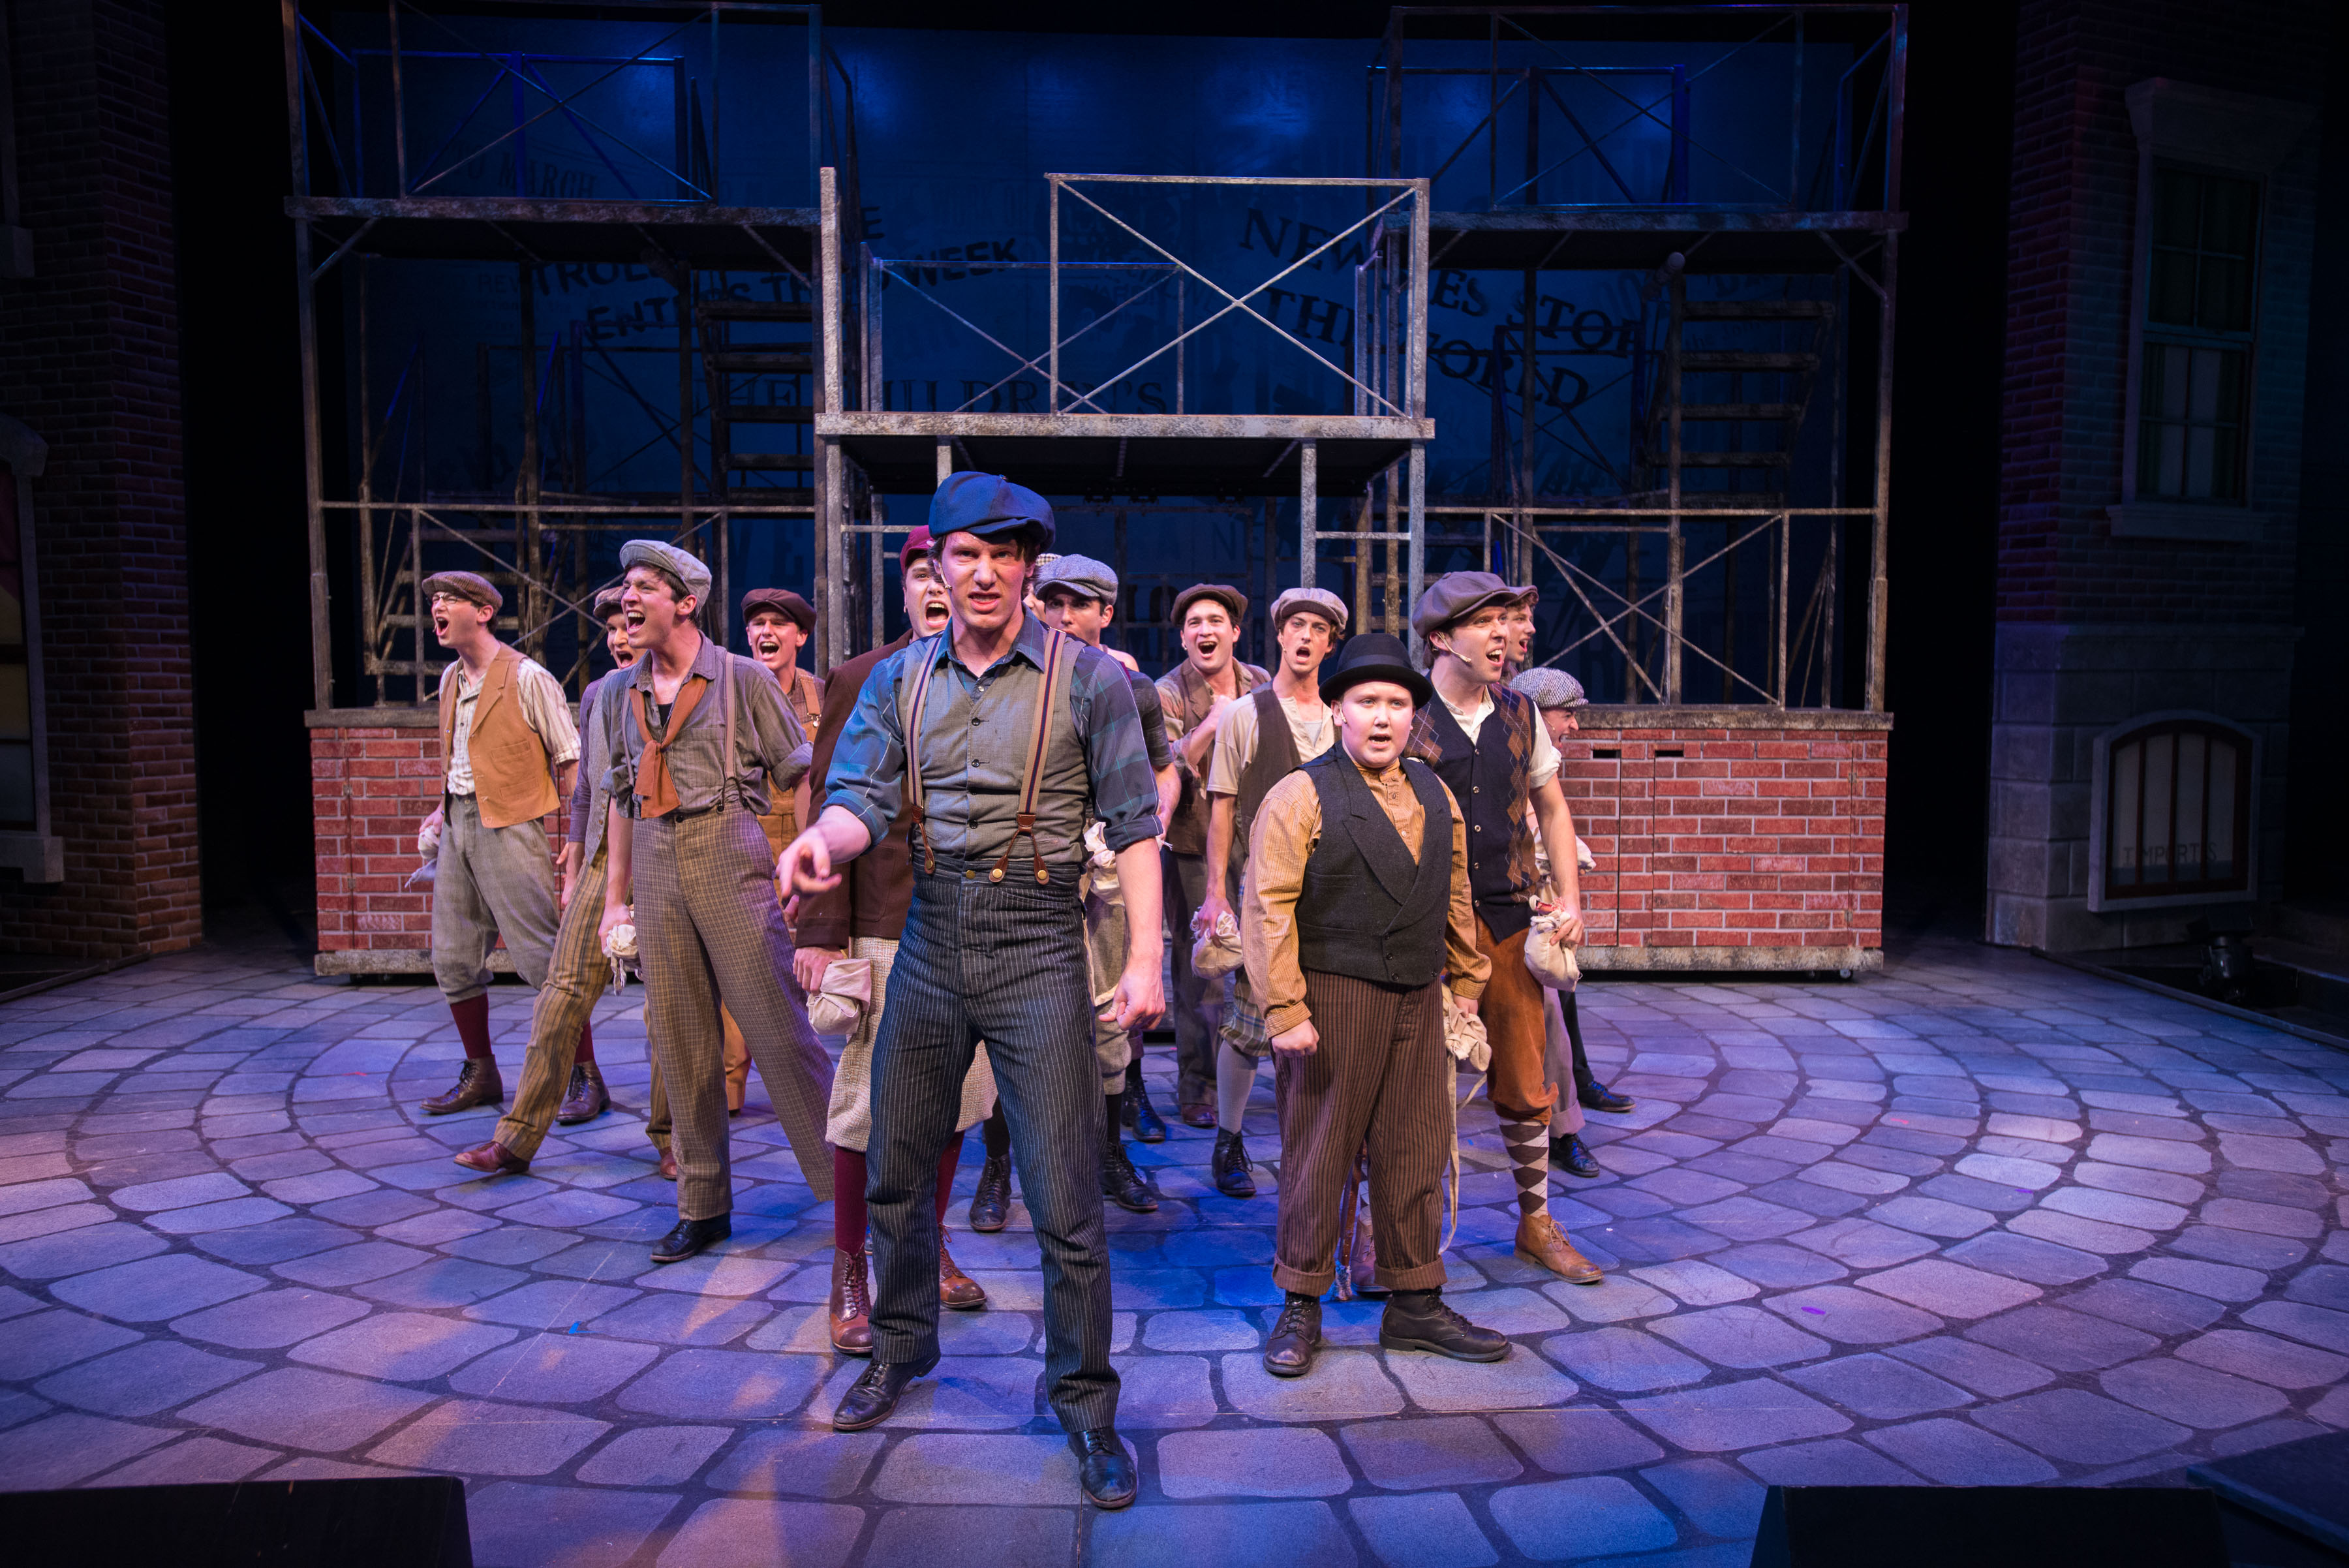 Regional Roundup: Top New Features This Week Around Our BroadwayWorld 8/4 - NEWSIES, A CHORUS LINE, SPRING AWAKENING, and More!